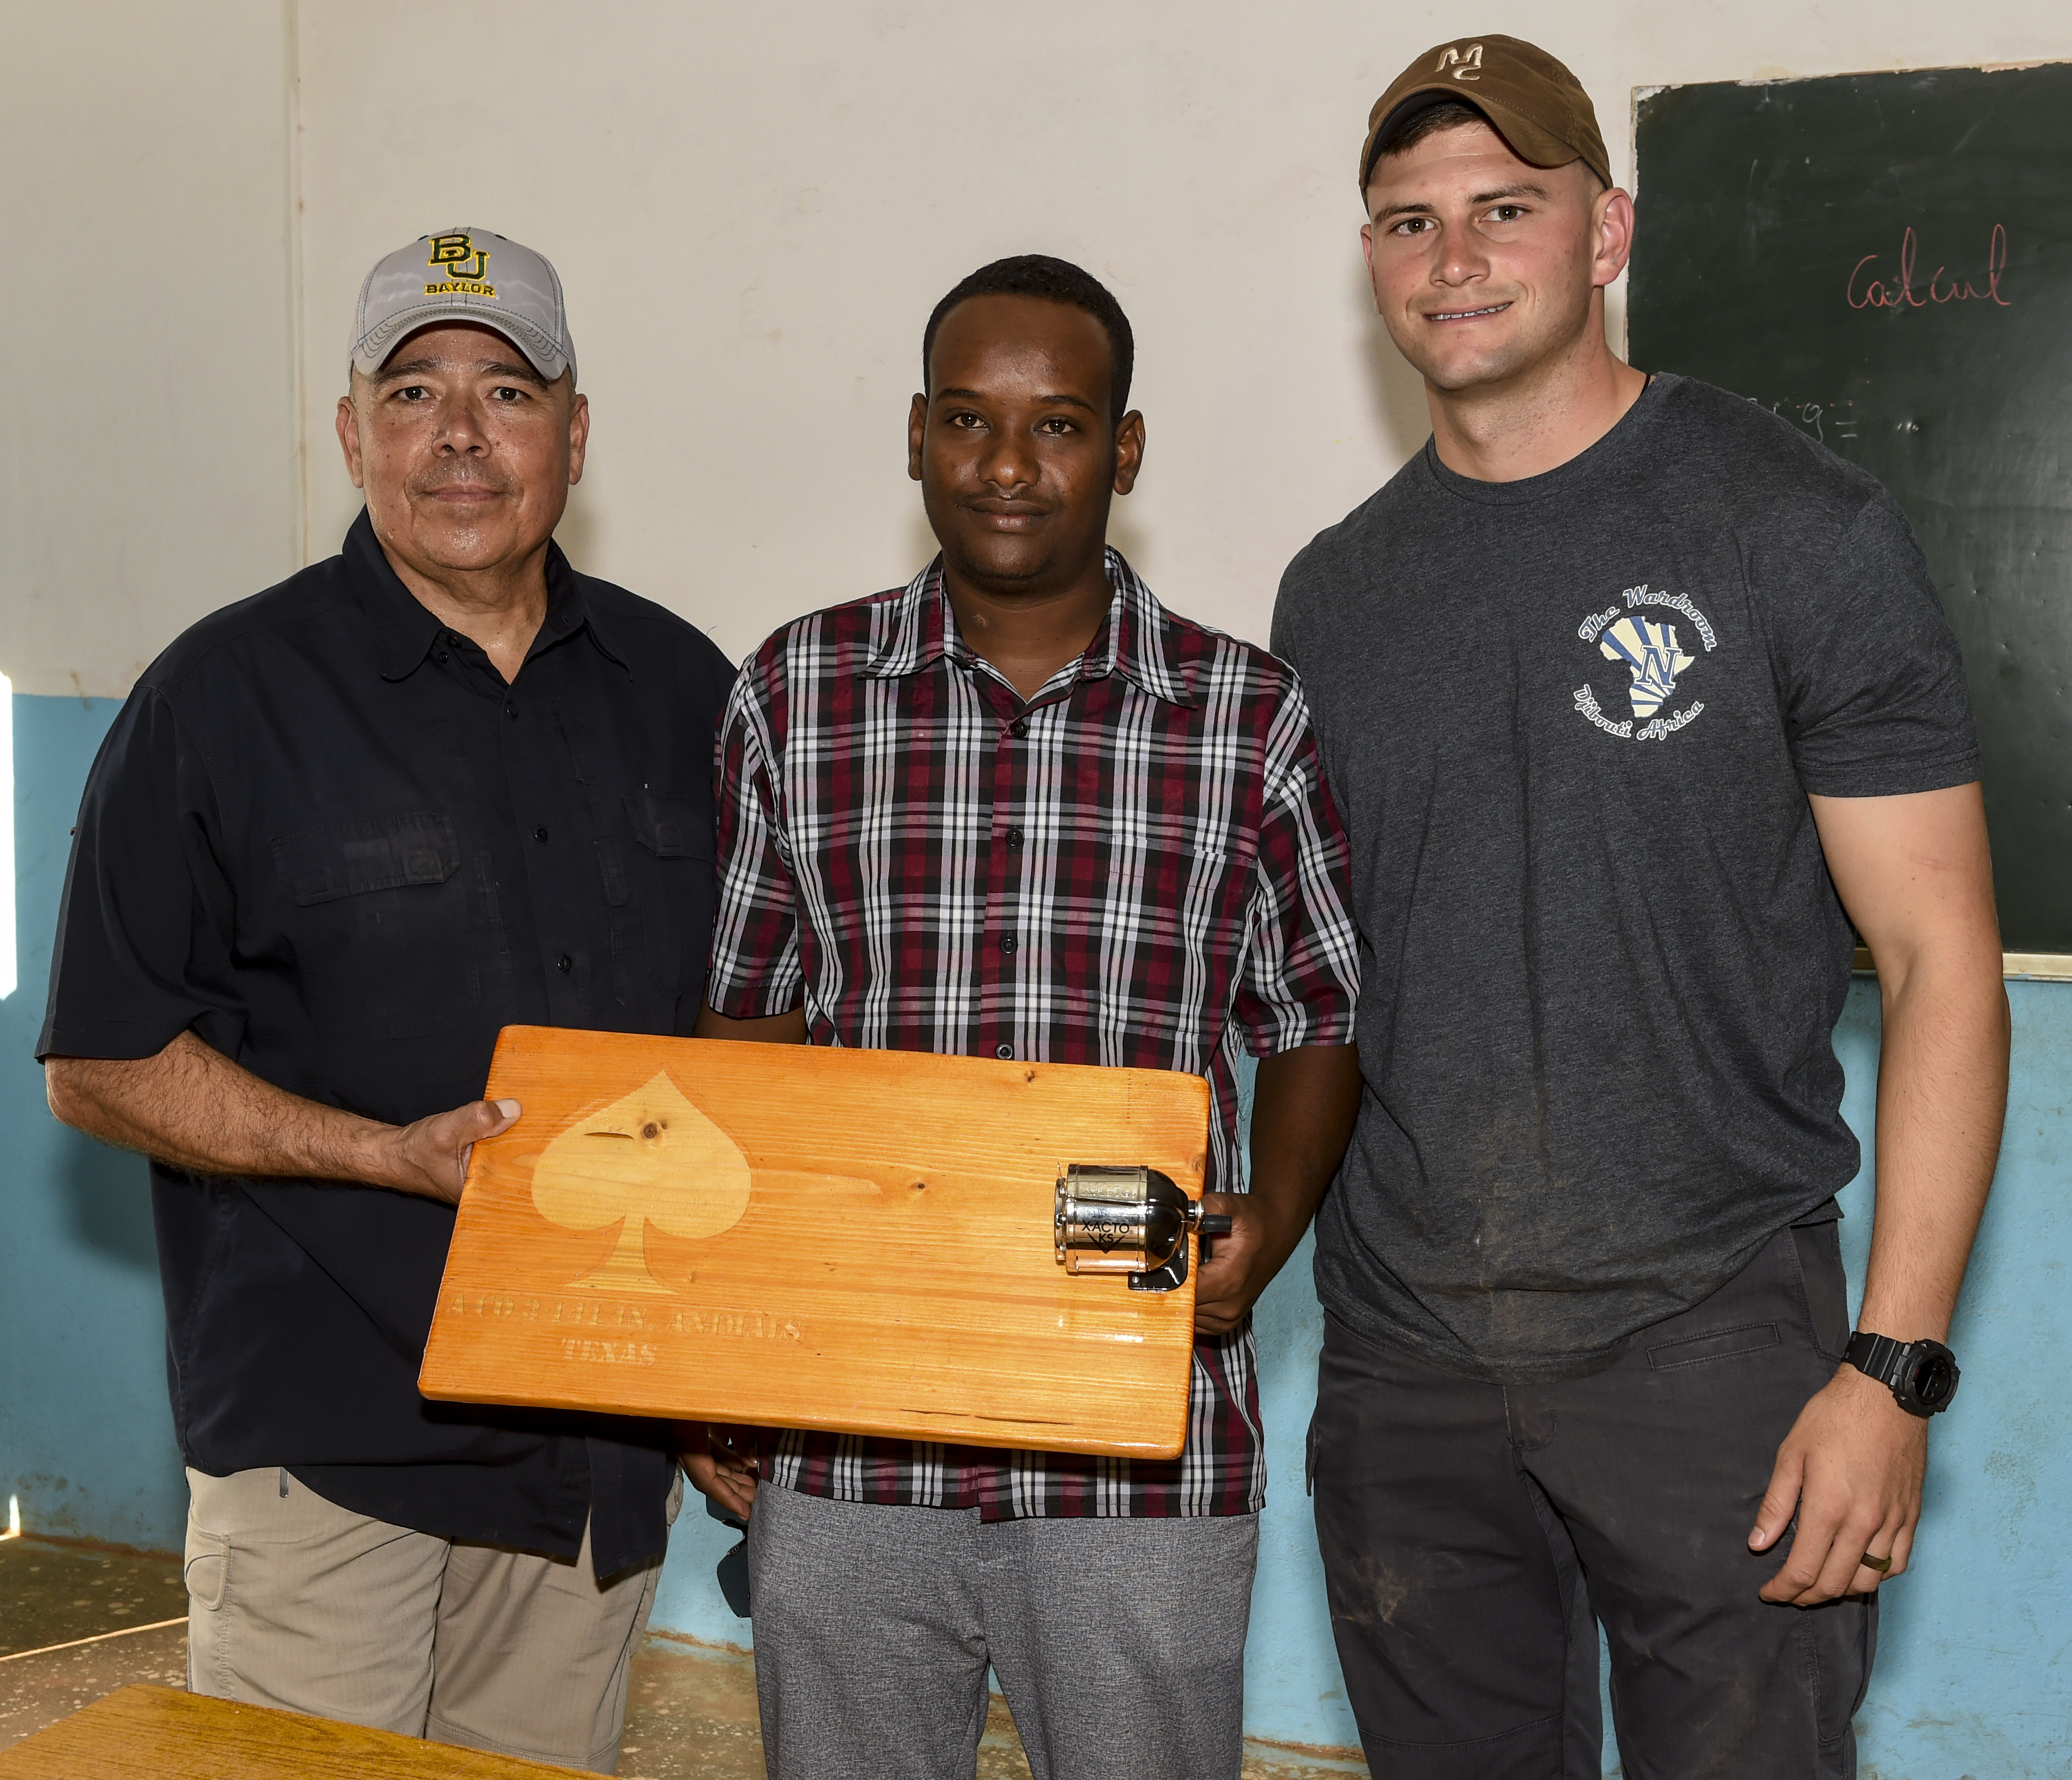 U.S. Army Sgt. 1st Class Juan Vela, left, and 1st Lt. Aidan Dietz, right, both with Animal Company, 3rd Battalion, 141st Infantry Regiment, assigned to Combined Joint Task Force - Horn of Africa (CJTF-HOA), present a portable manual pencil sharpener to Amin Houssein, teacher, in Ali Oune, Djibouti, March 28, 2018. CJTF-HOA service members donated more than $400 of school supplies and sandals to Somali refugee students in Djibouti. (U.S. Air Force photo by Staff Sgt. Timothy Moore)